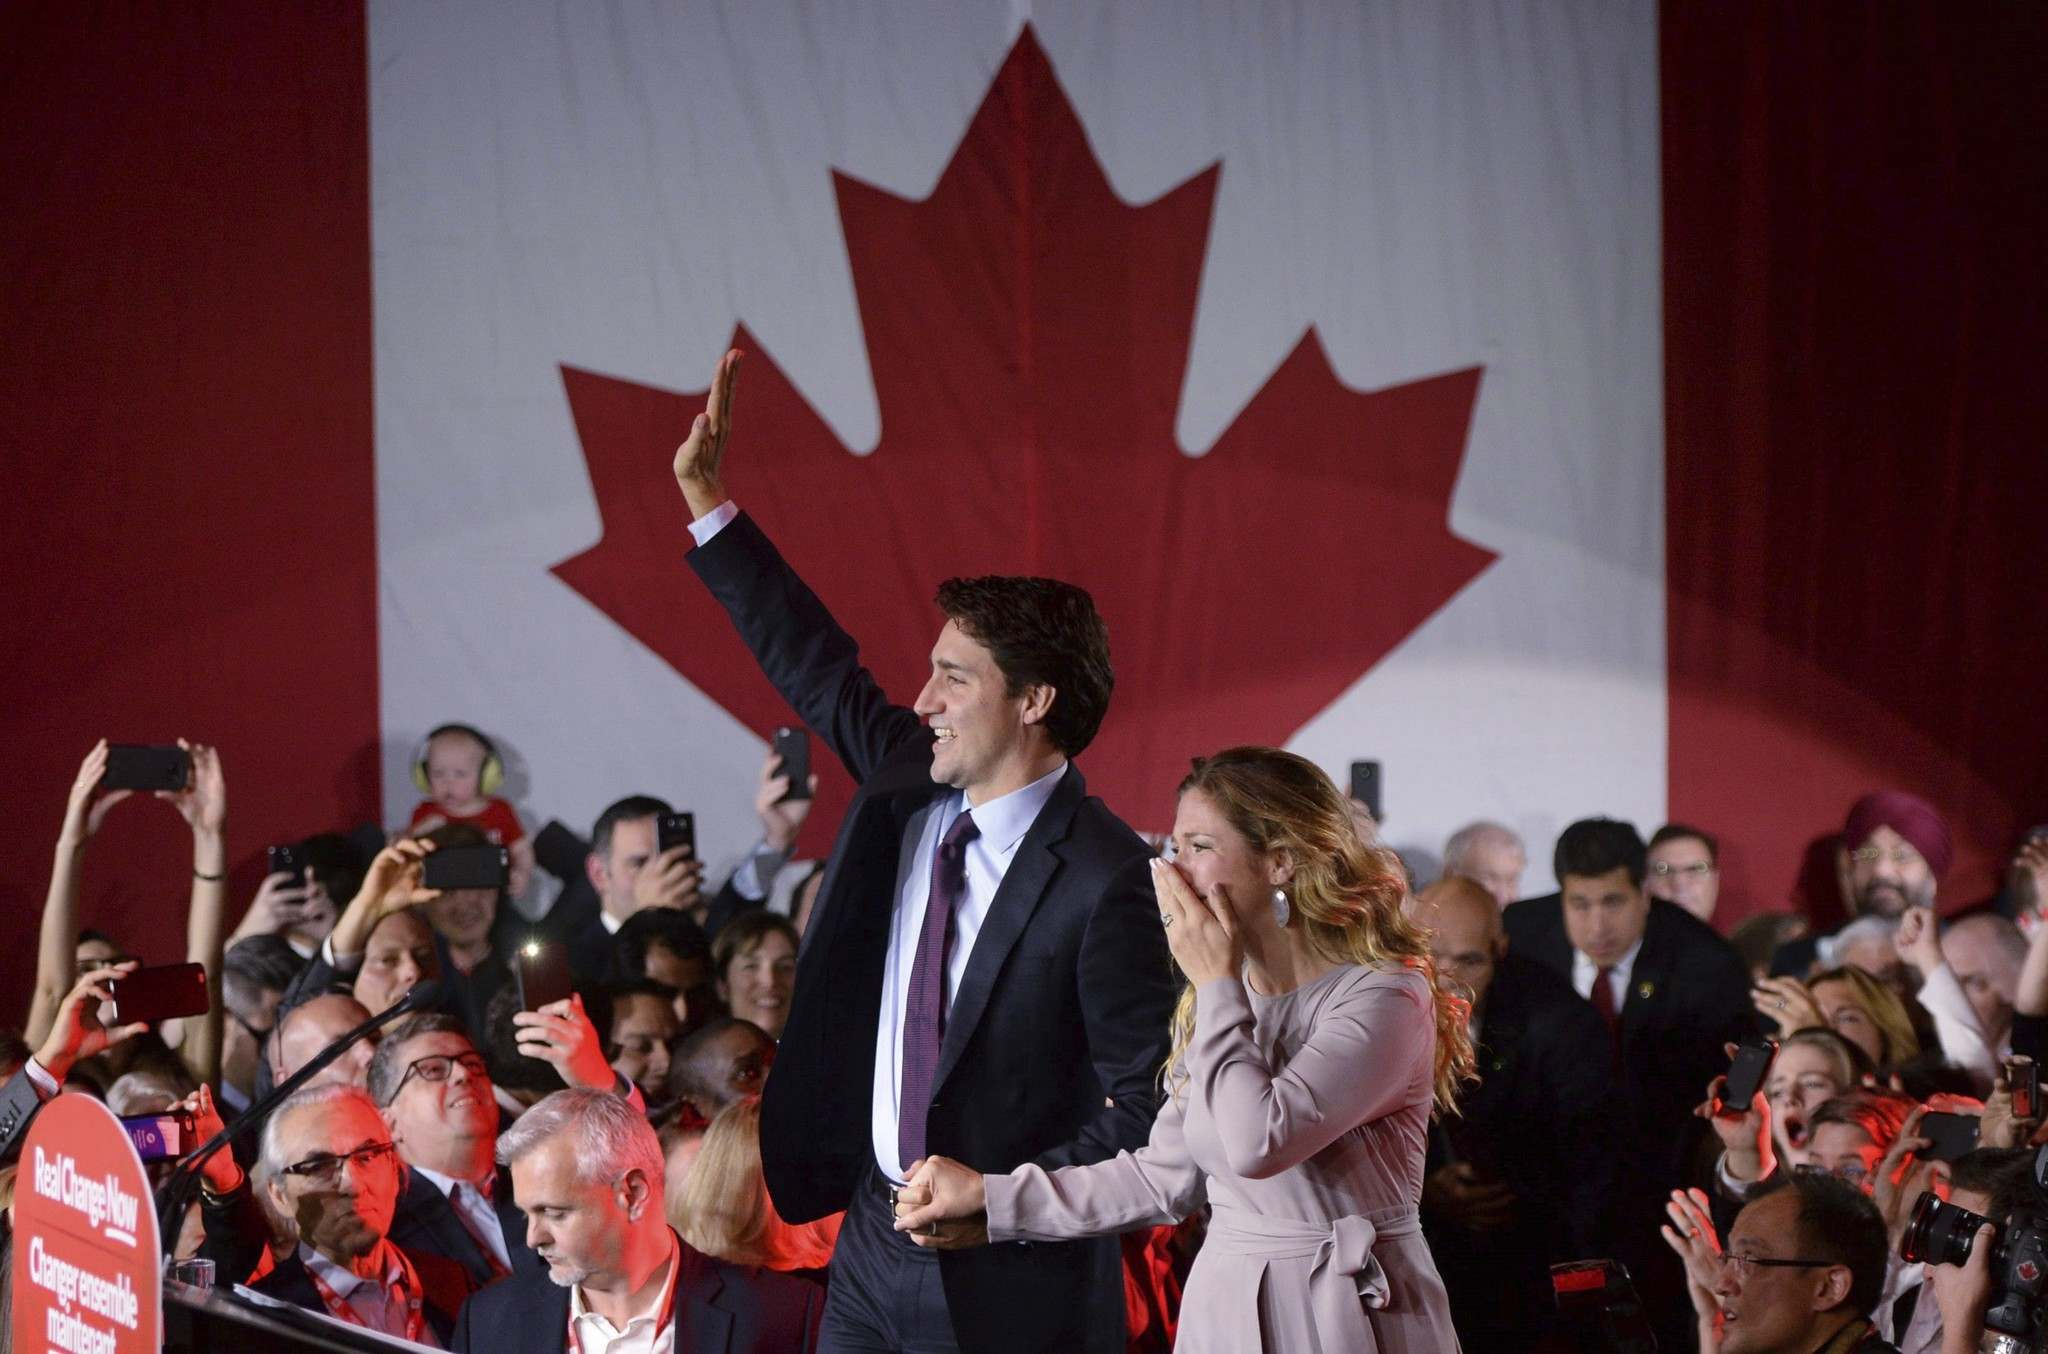 Justin Trudeau, with wife Sophie Grégoire-Trudeau, celebrates his victory last October. He just marked his first 100 days in power.